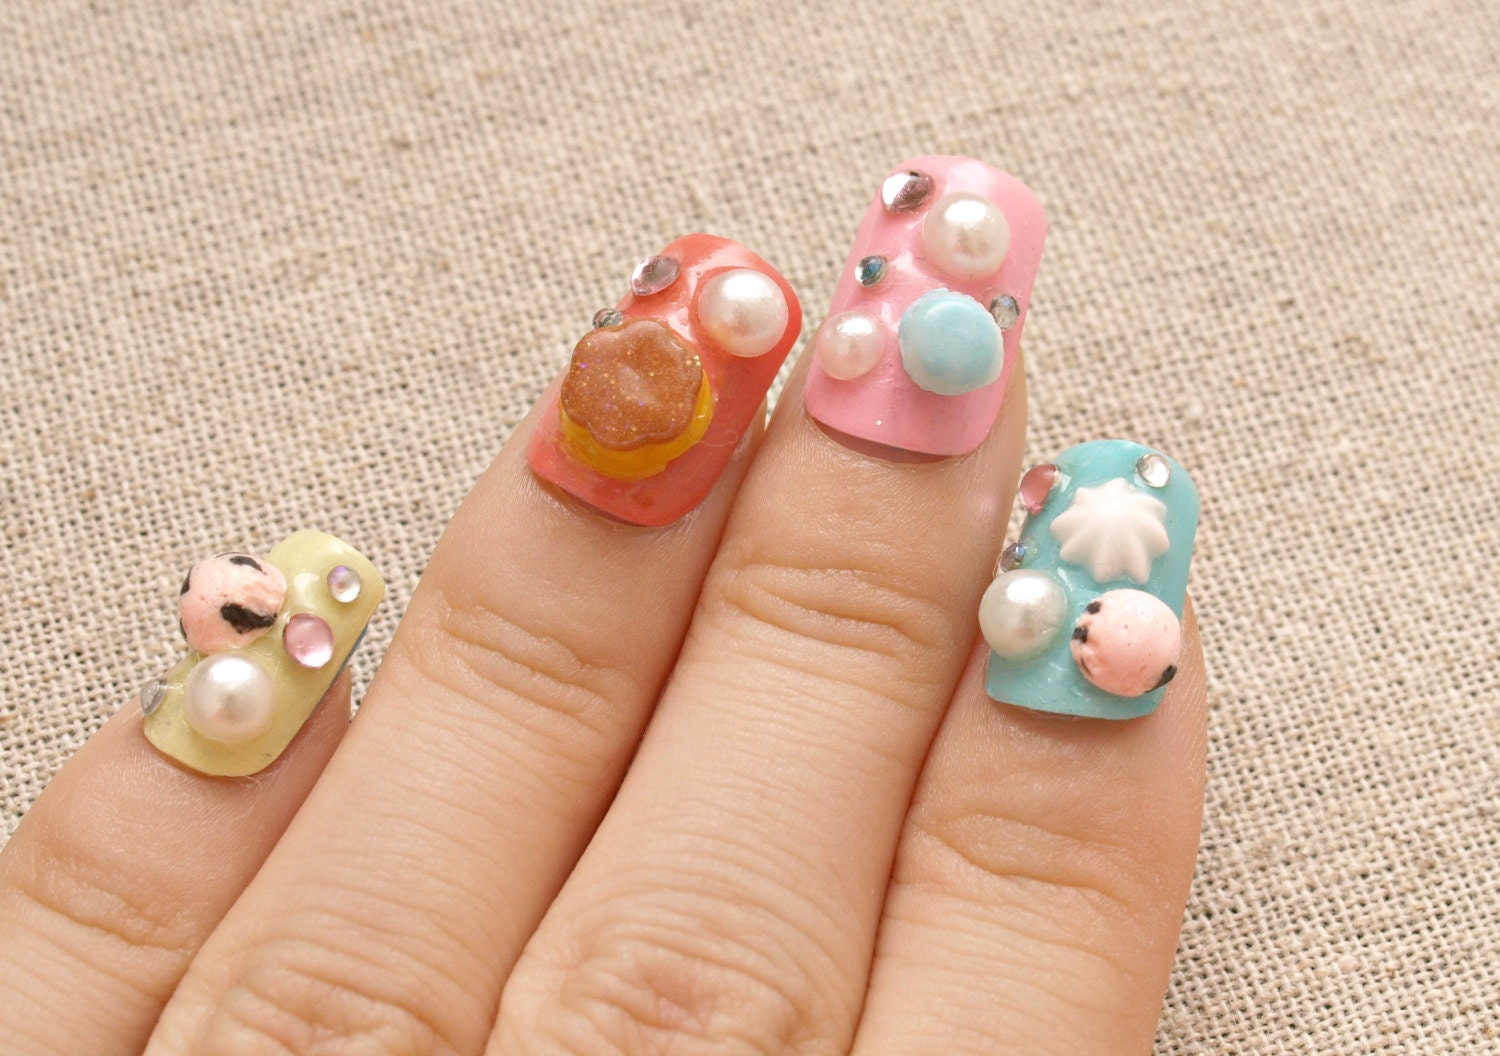 Japanese 3D nails, lolita accessory, Harajuku, Jfashion, pastel ...